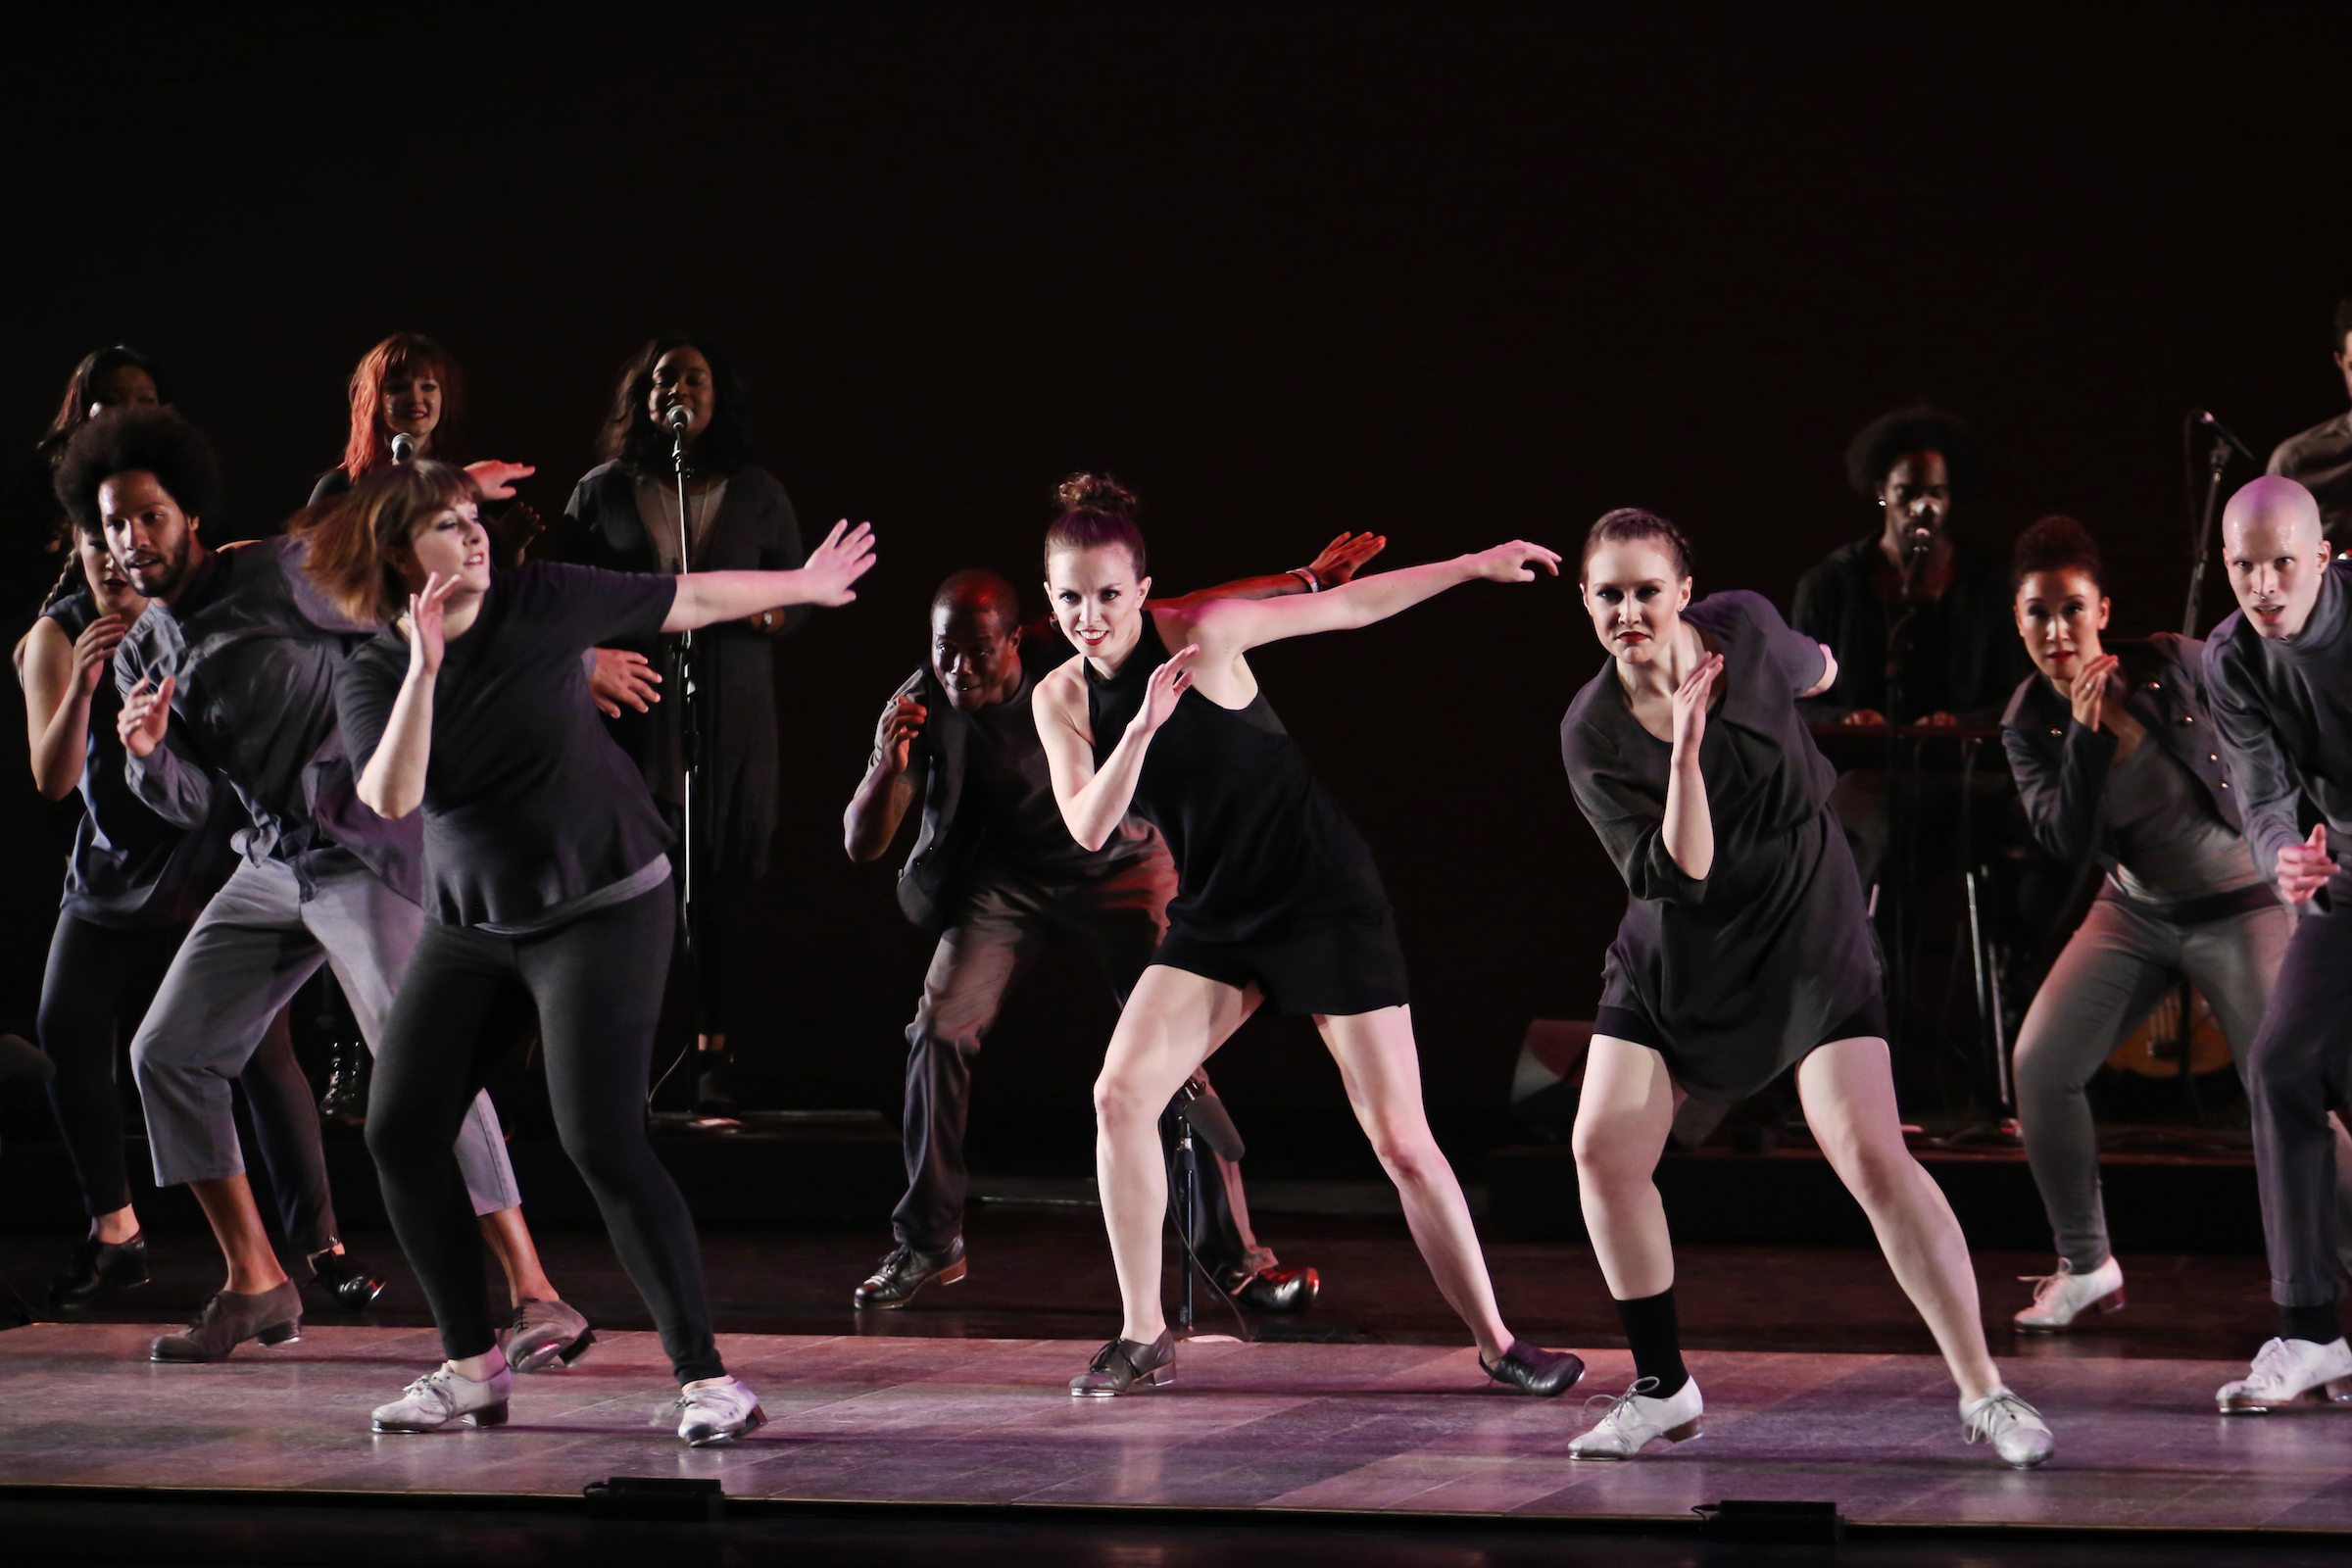 """Fall for Dance Festival Dorrance Dance """"Myelination"""" (World Premiere) Performers: Michelle Dorrance (centre), and members of the company New York City Center New York, N.Y. October 8, 2015 Photo Credit: Julieta Cervantes"""